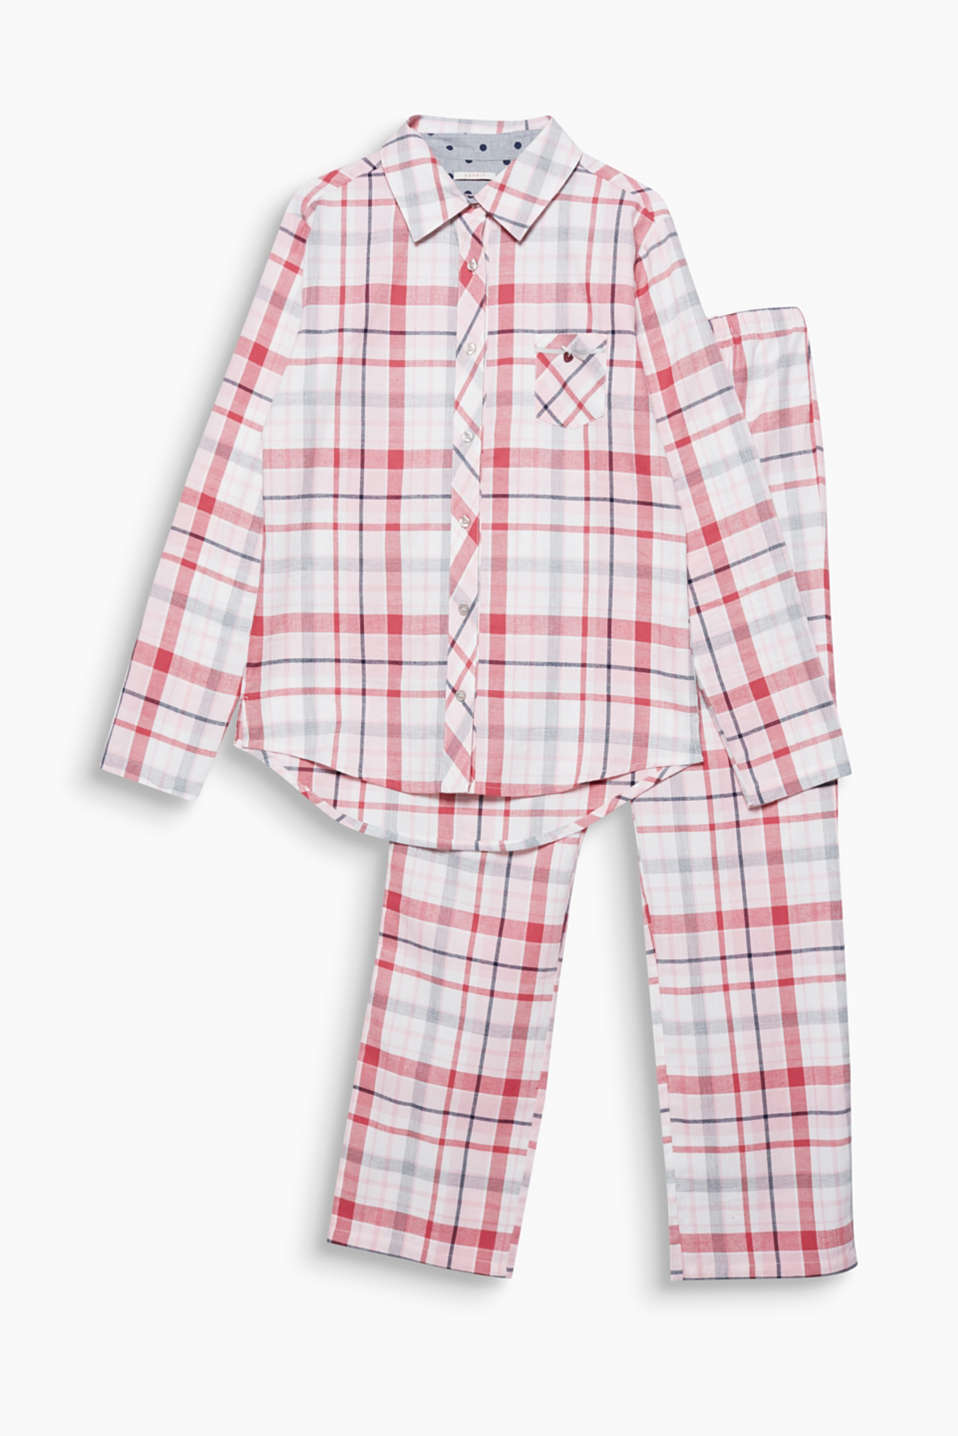 Fine flannel for sweet dreams: checked pyjamas in a boyfriend style with polka dot lining and a breast pocket